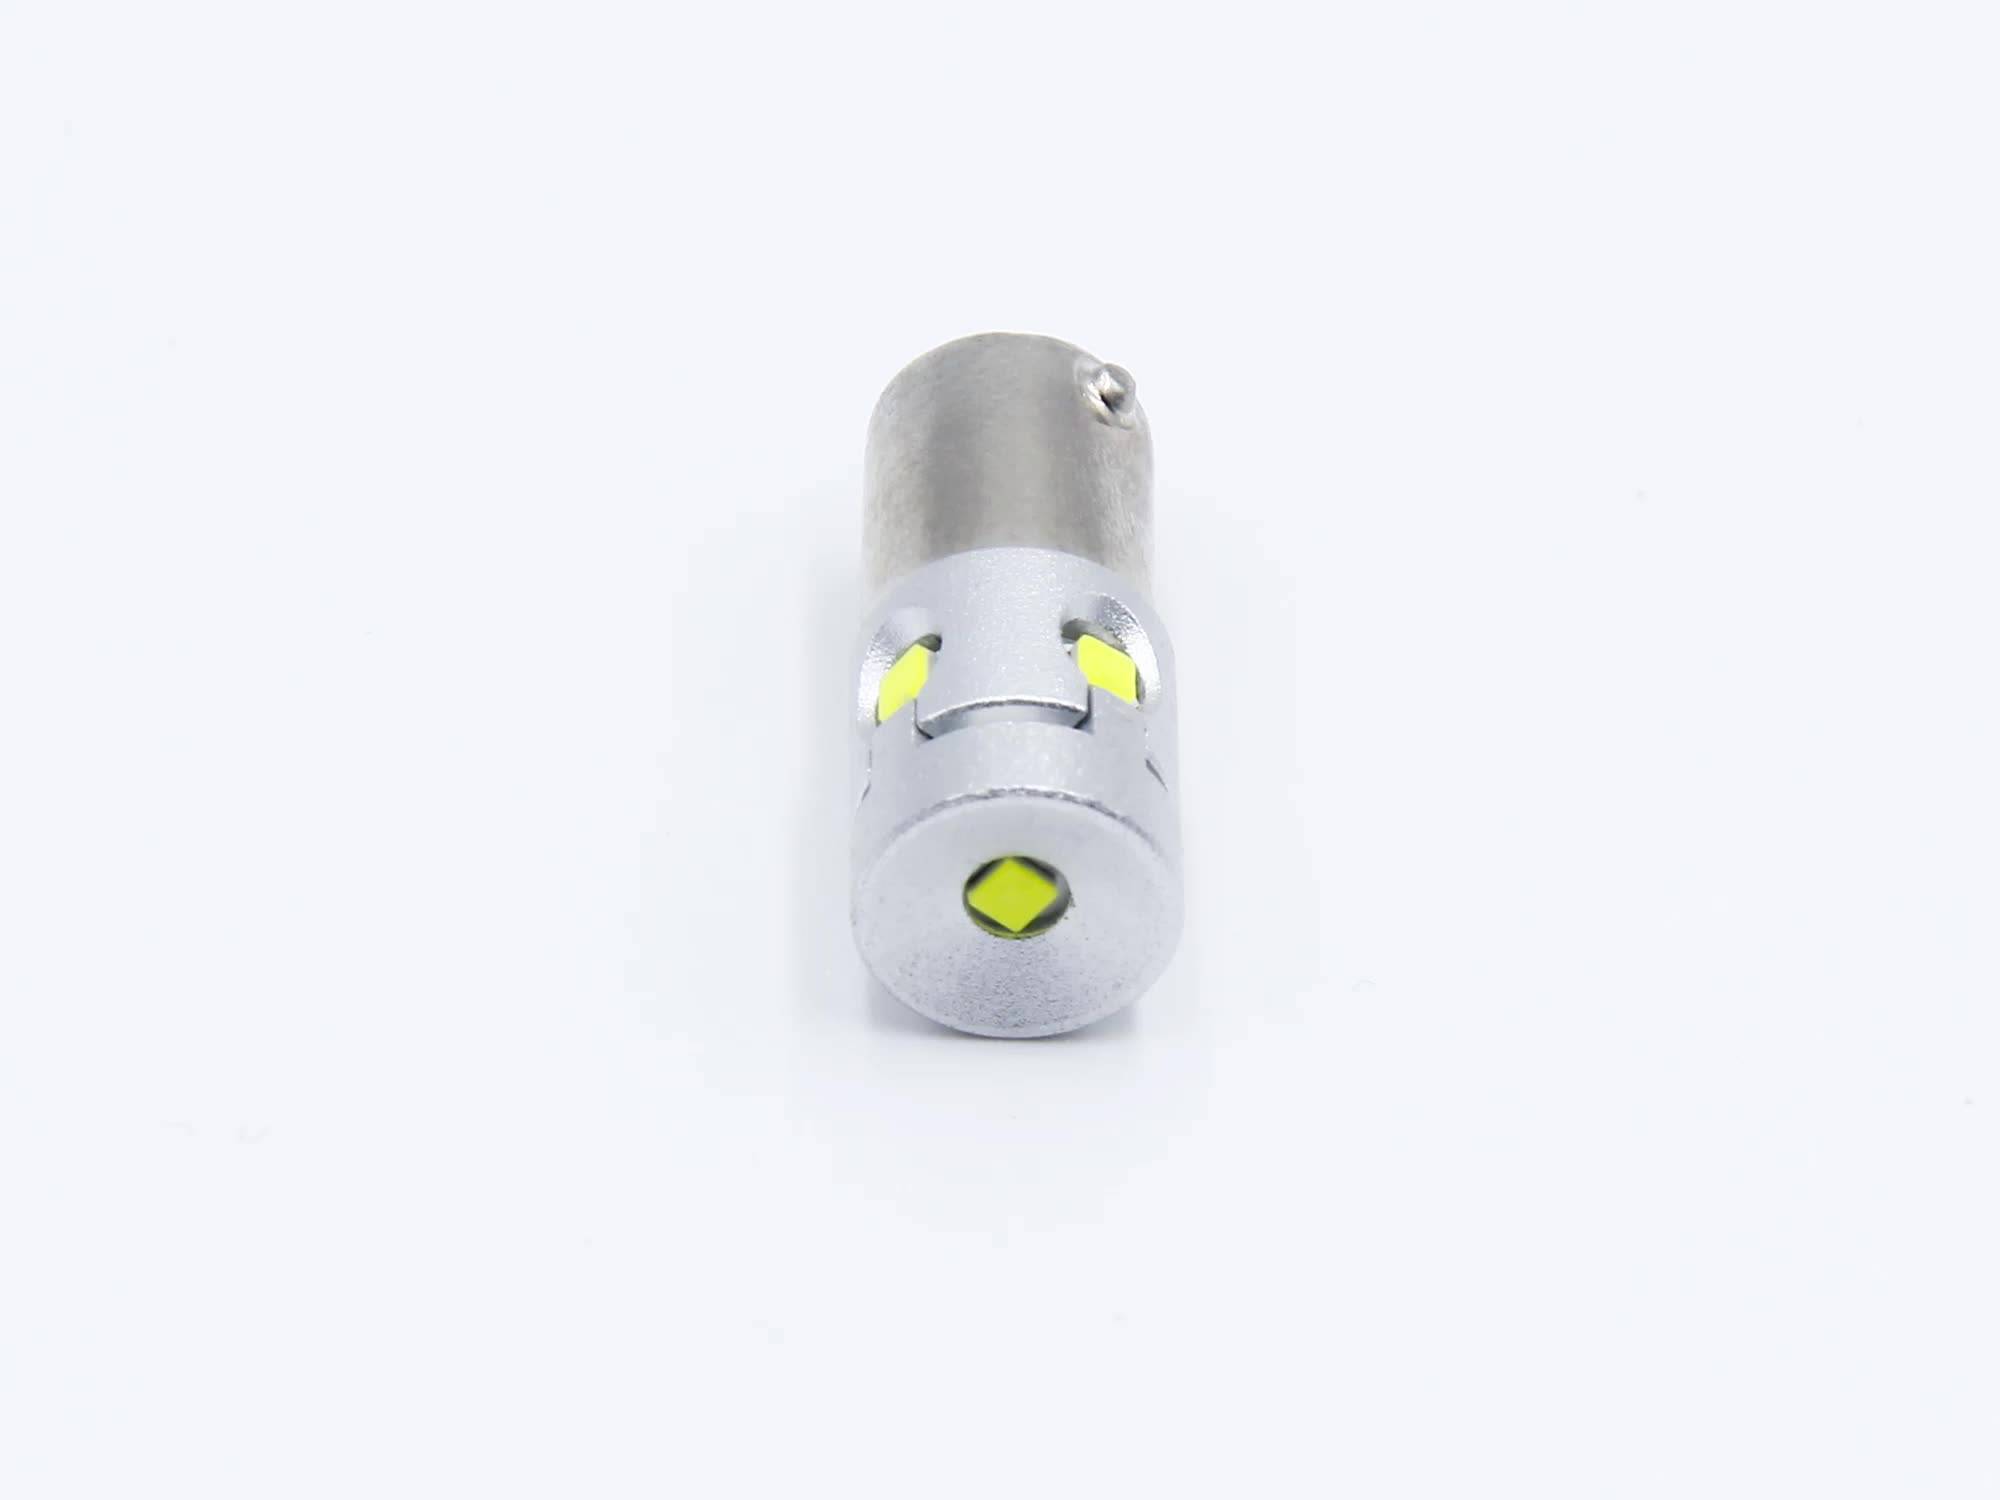 High quality 2020 9smd canbus LED BA9S H6W bulbs for License/side/Interior10-60V DC/AC 340LM canbus LED lamp